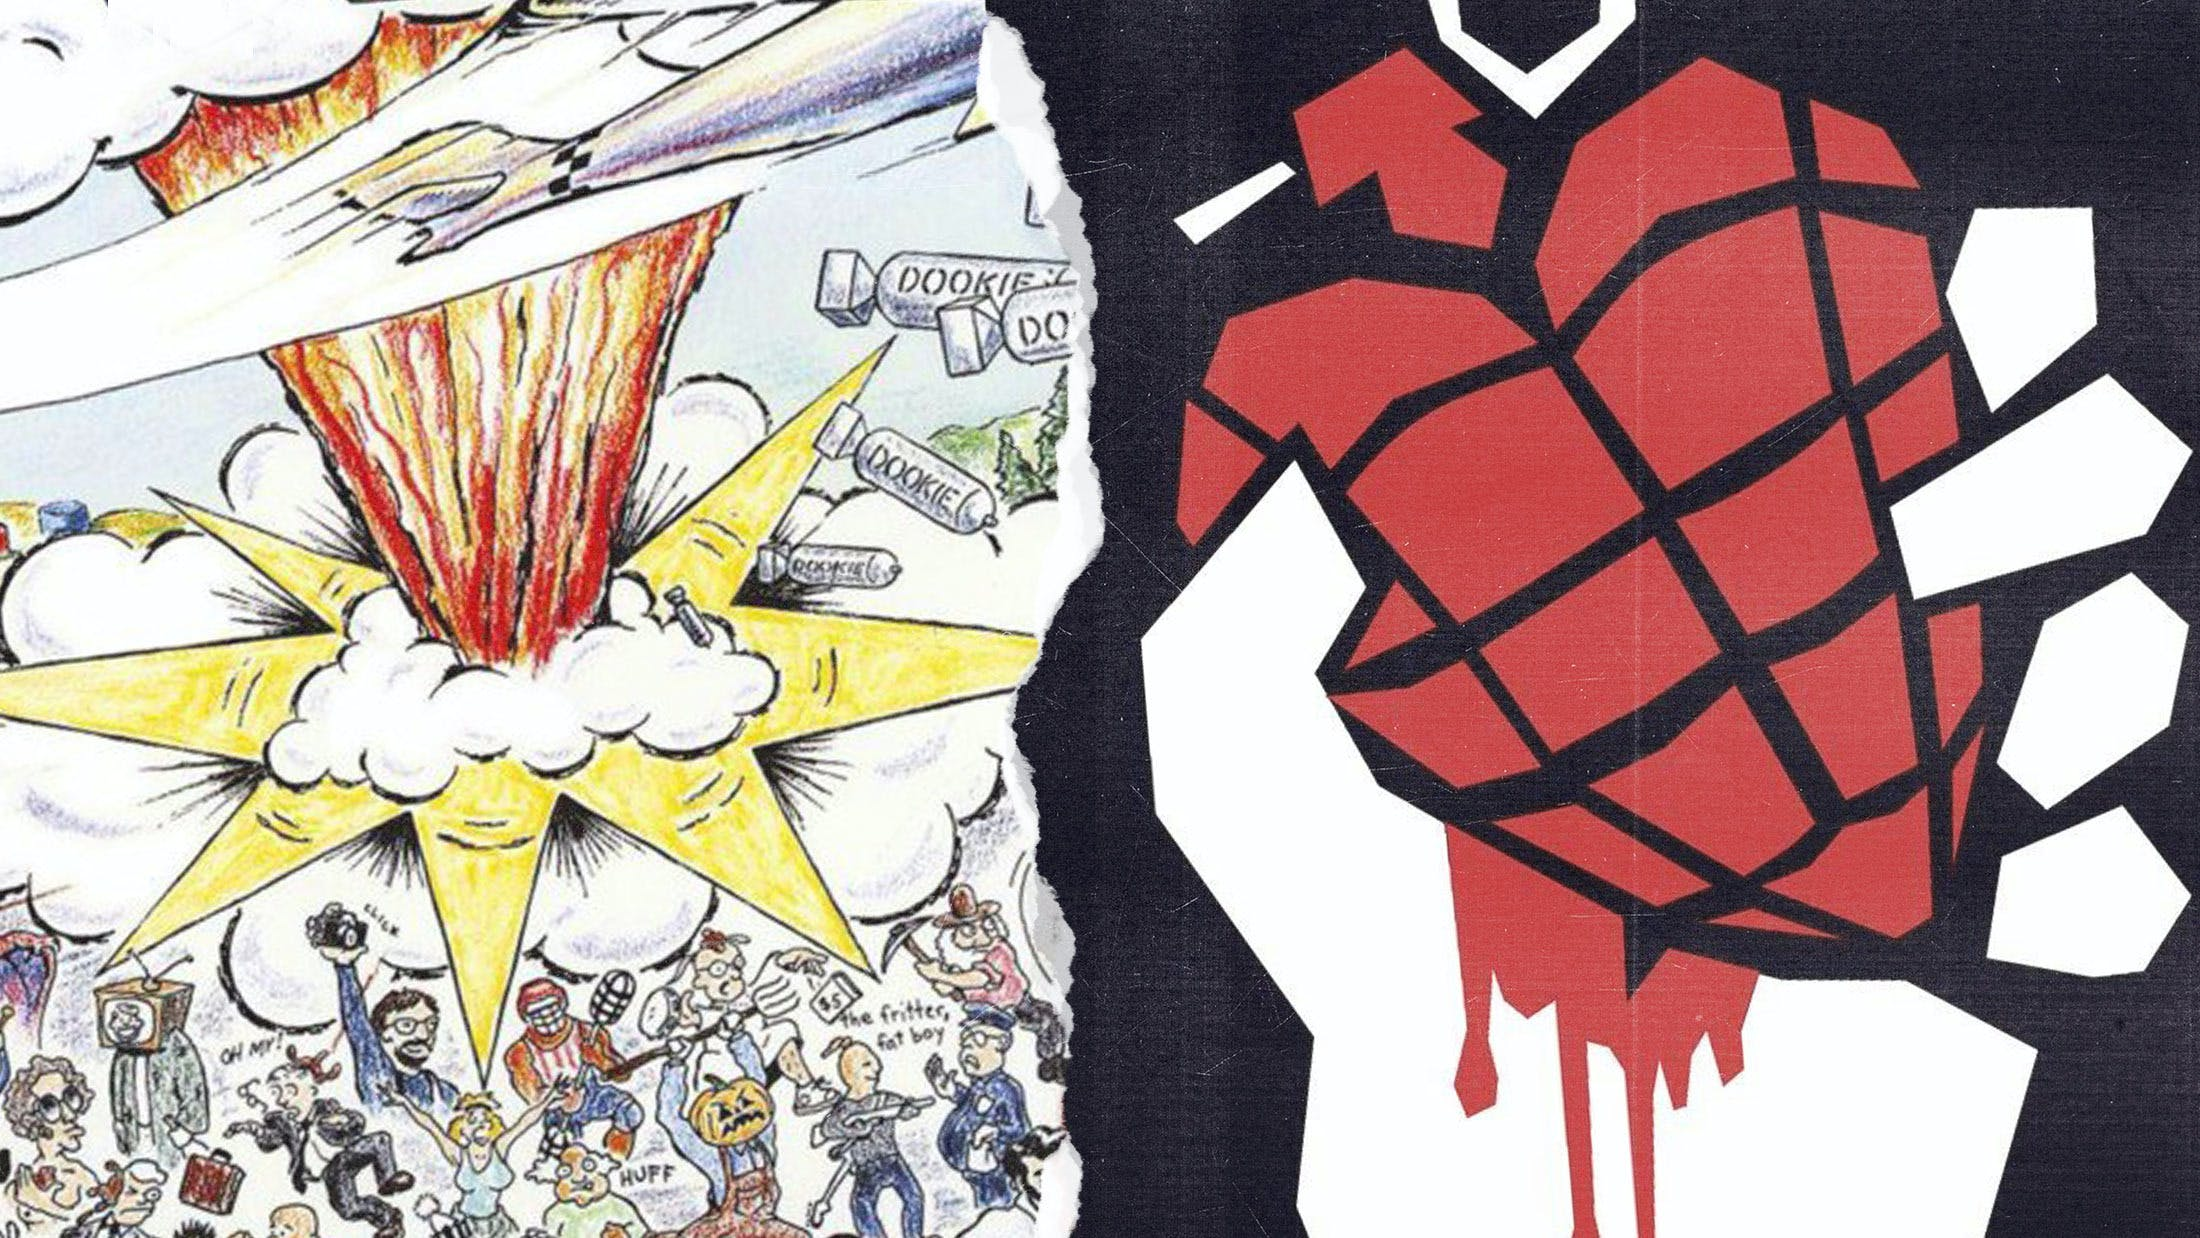 The album artwork for Green Day's Dookie and American Idiot